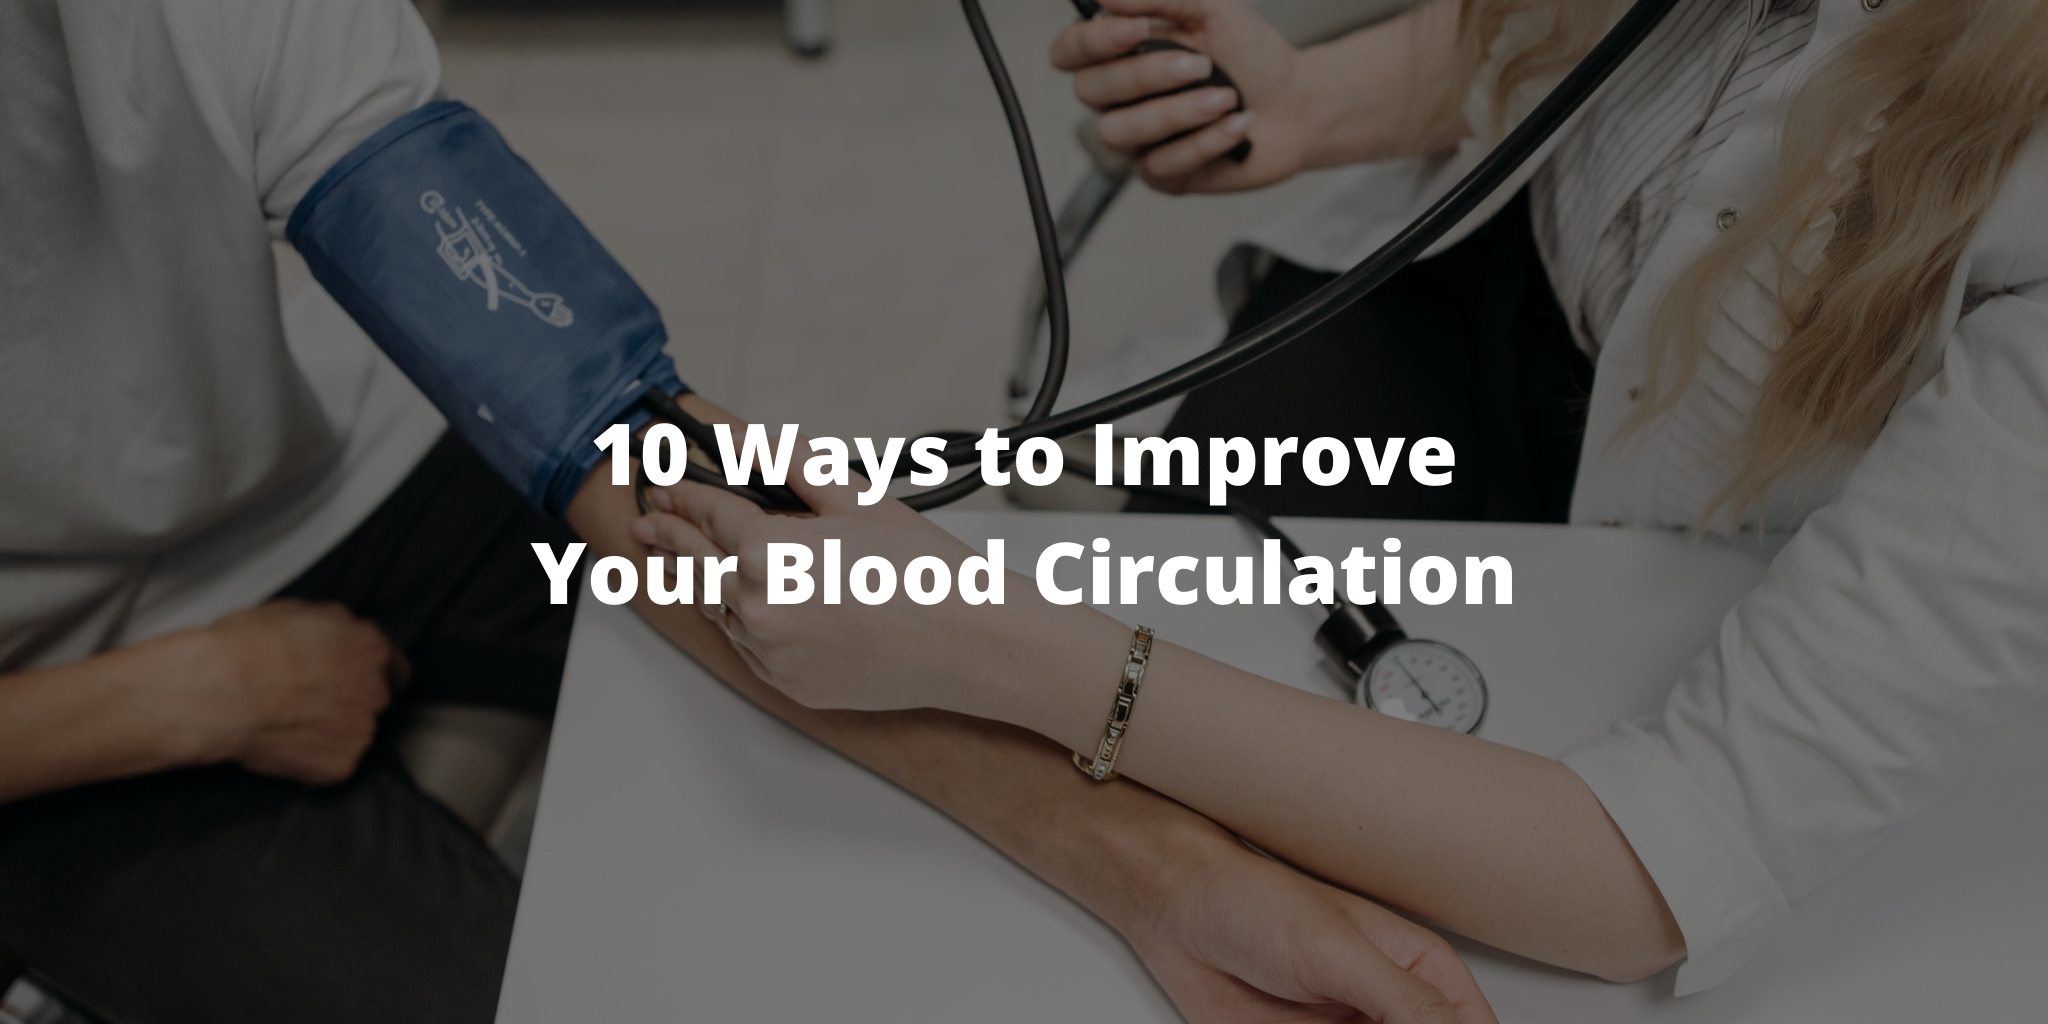 10 Ways to Improve Your Blood Circulation